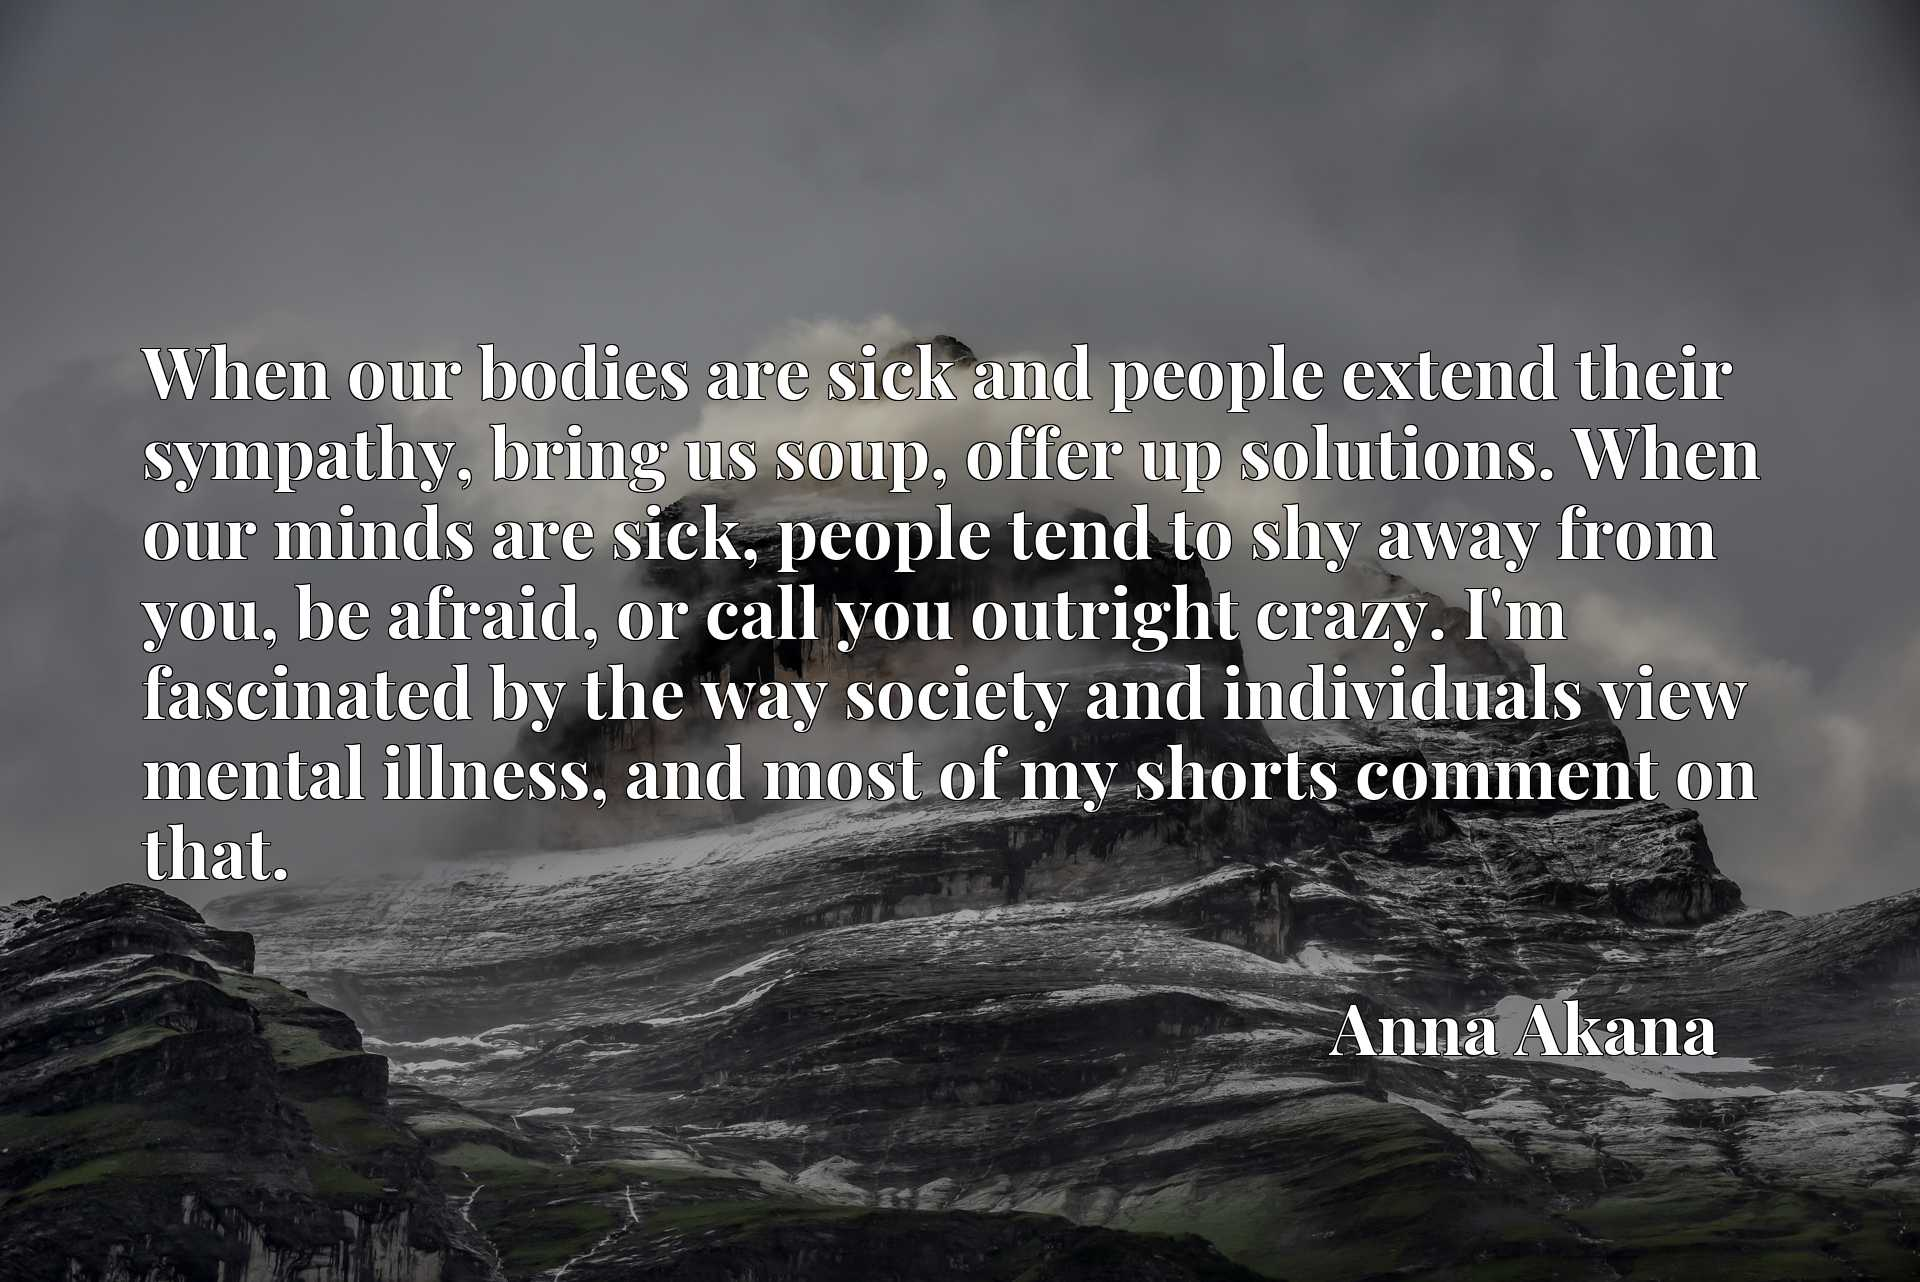 When our bodies are sick and people extend their sympathy, bring us soup, offer up solutions. When our minds are sick, people tend to shy away from you, be afraid, or call you outright crazy. I'm fascinated by the way society and individuals view mental illness, and most of my shorts comment on that.